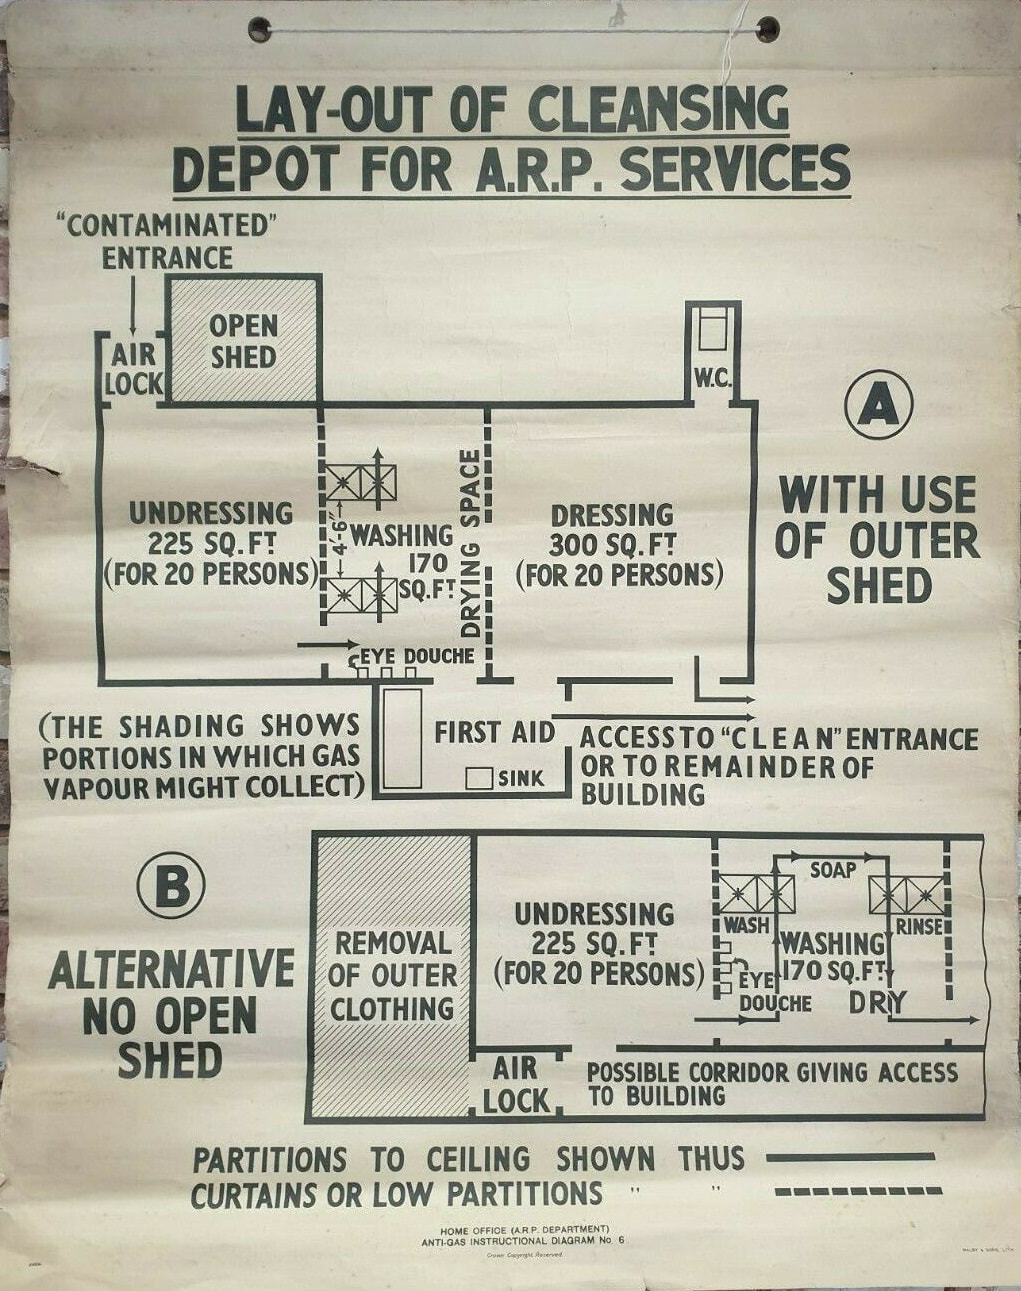 WW2 Layout Of Cleansing Depot For ARP Services Poster